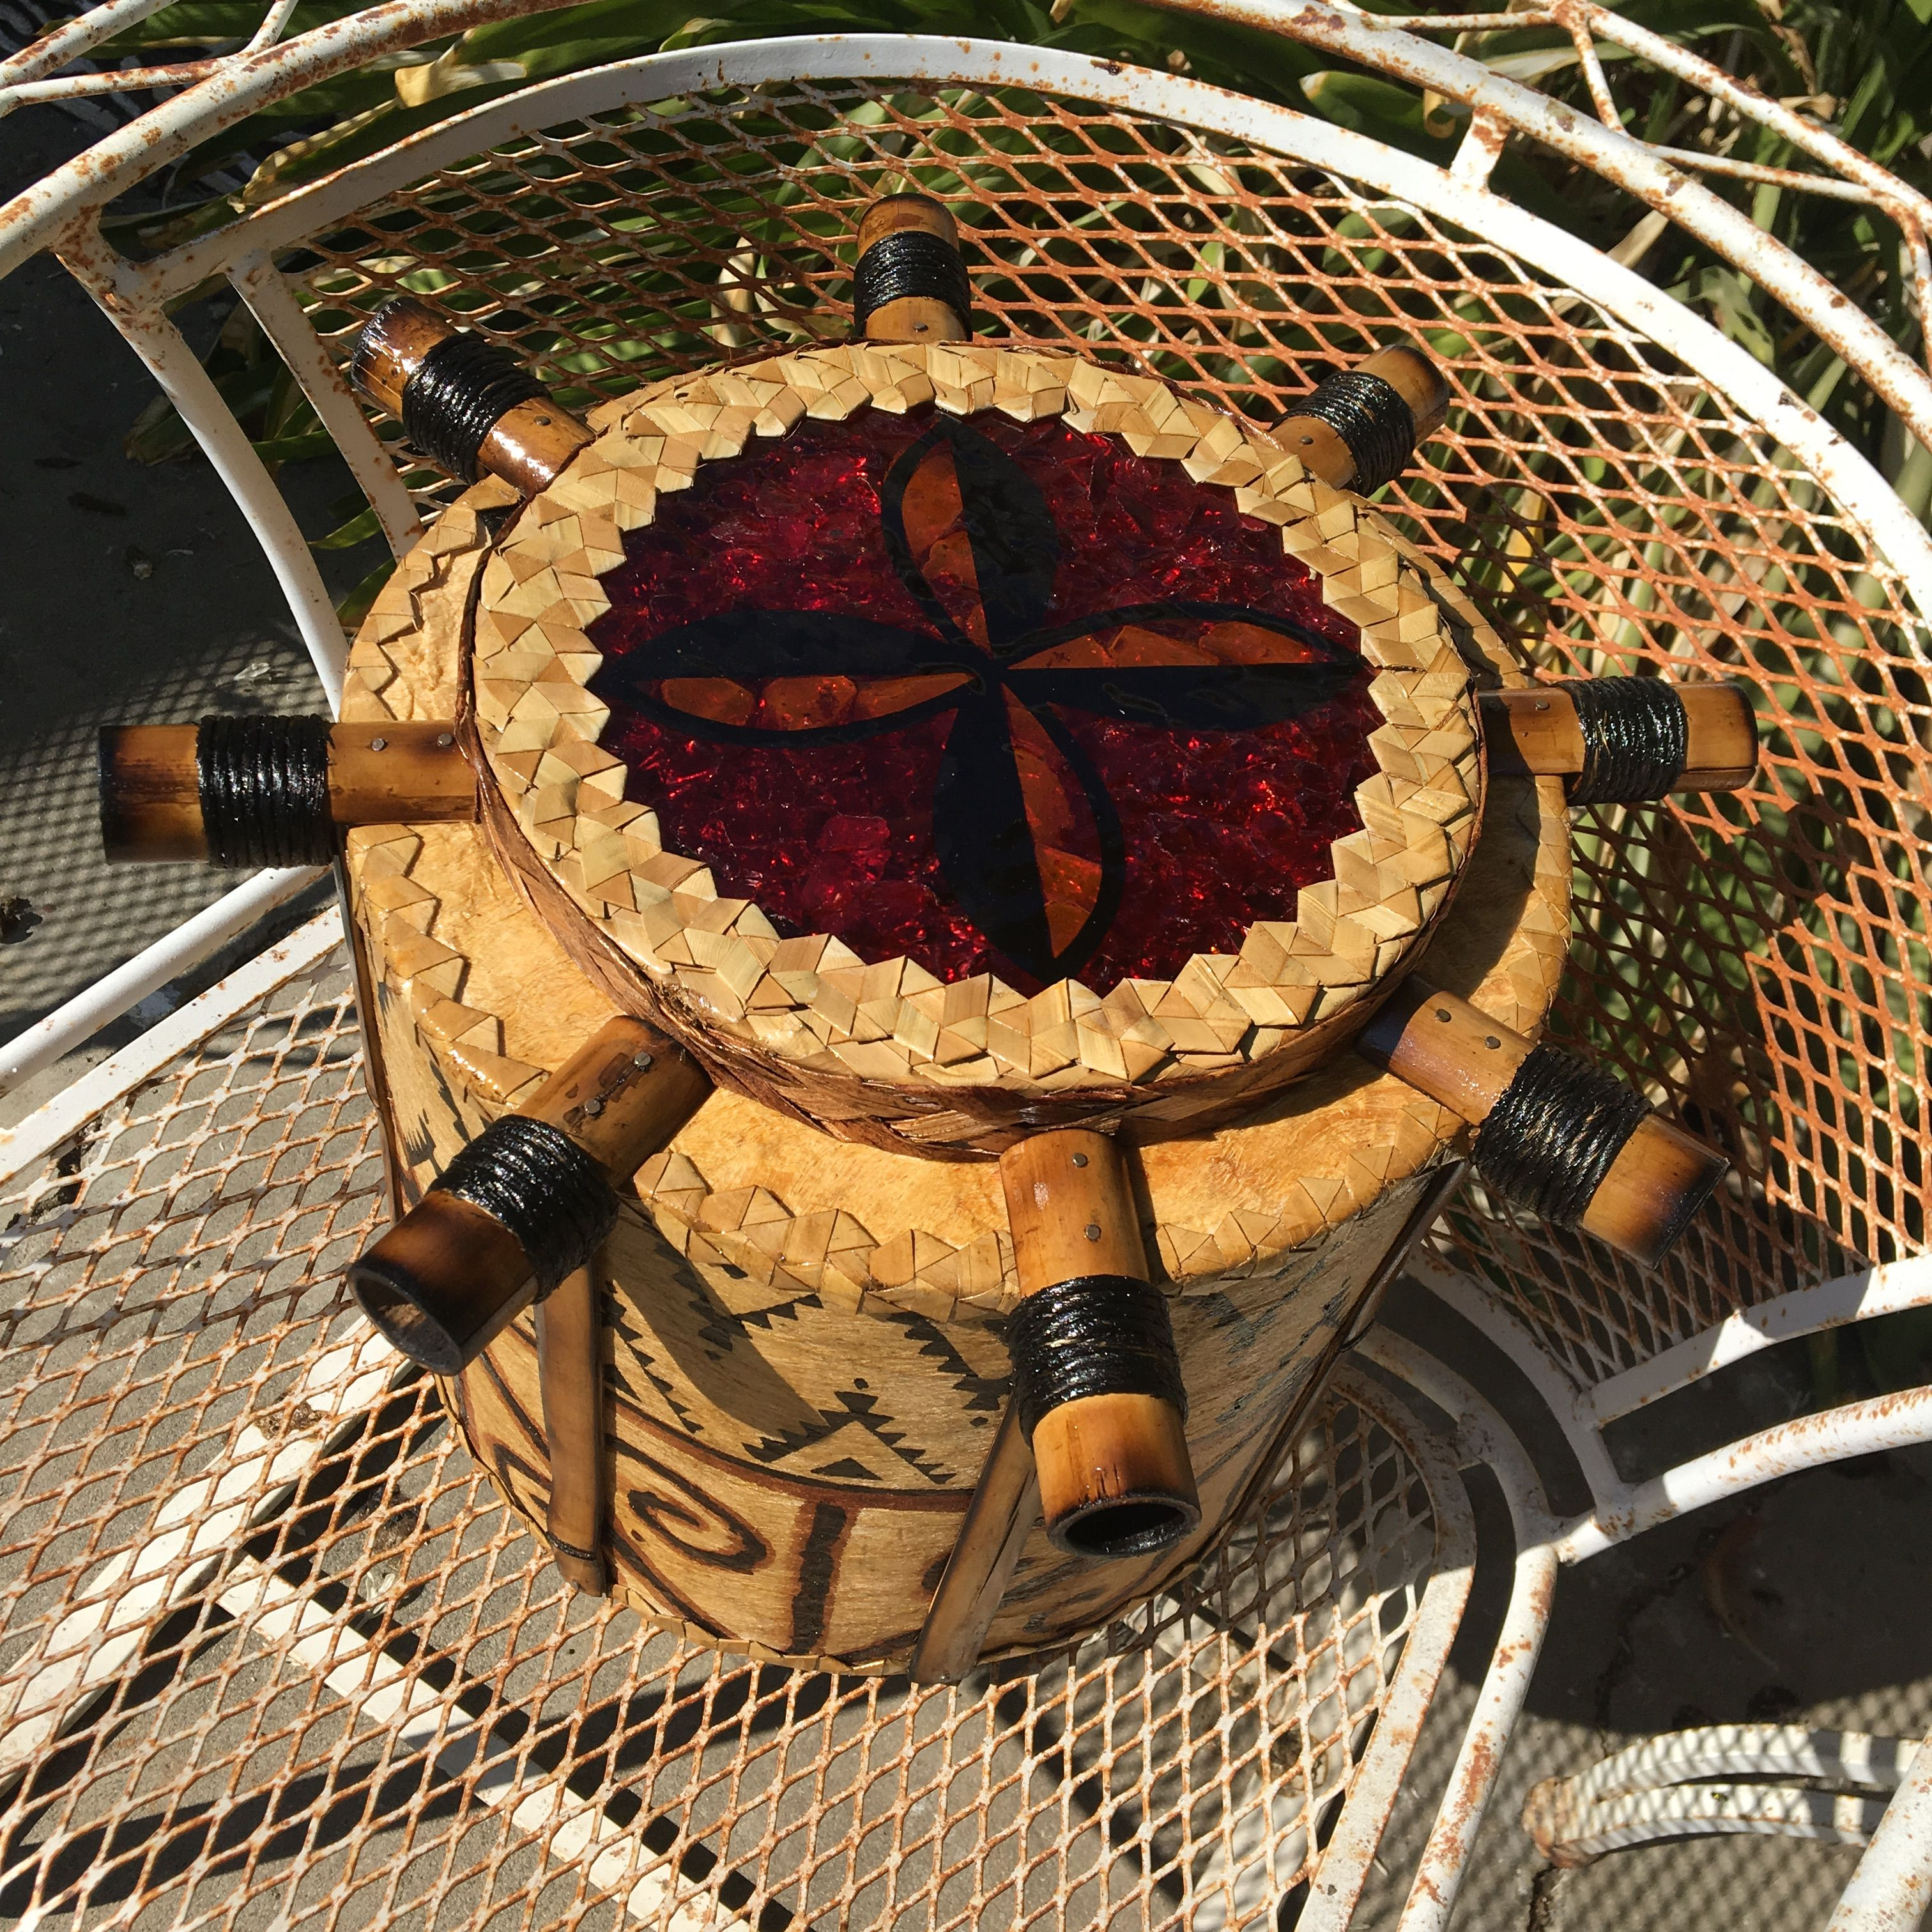 Inspiration Photo Tiki Hut: Pin By Chad Greenwood On Tiki Lamps I've Made (With Images